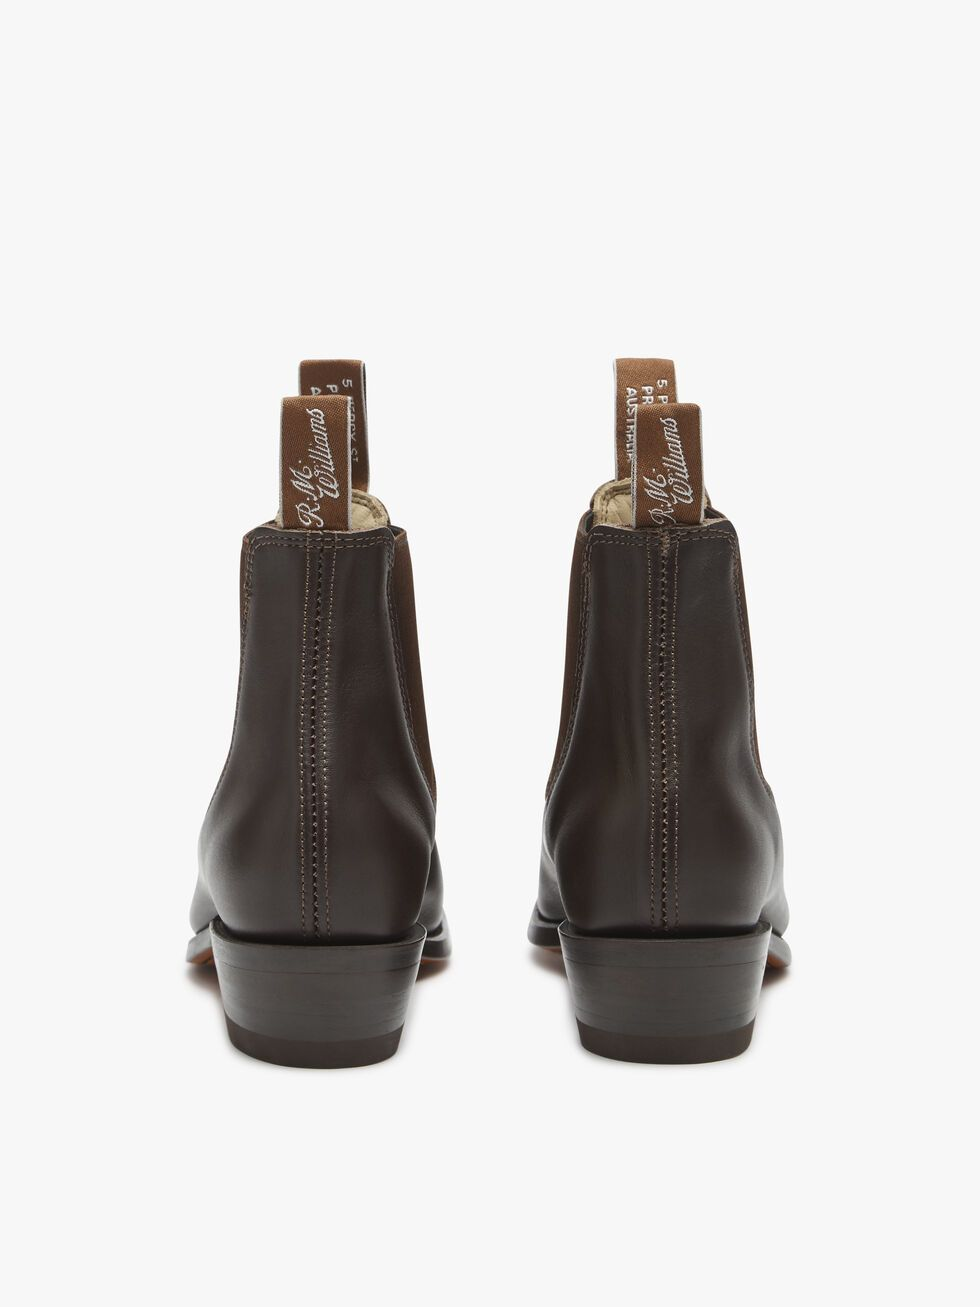 R.M.WILLIAMS PTY. LTD. SHOE RM Williams | Lady Yearling - Chestnut